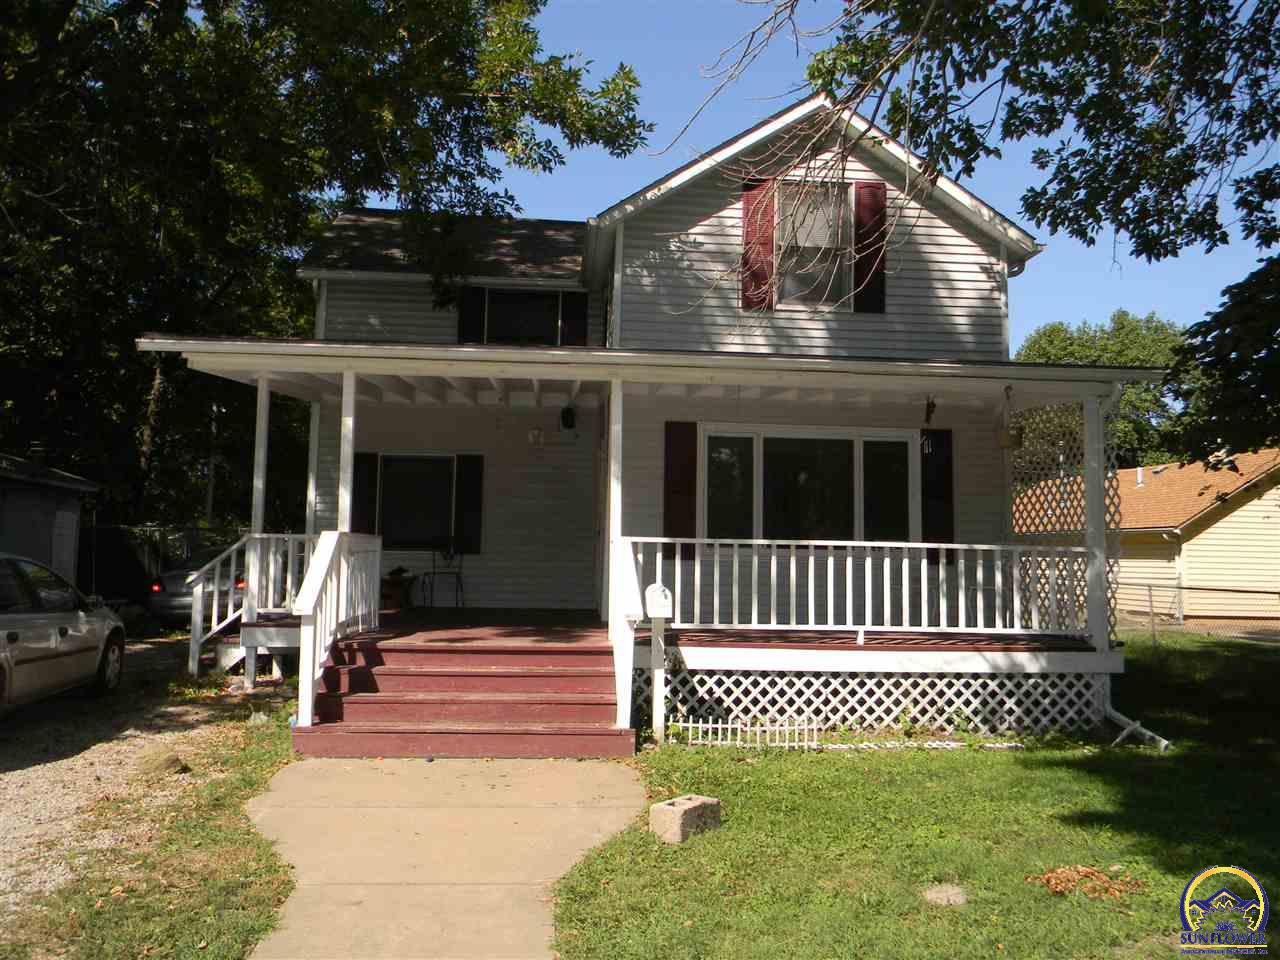 Photo of 1121 NE Winfield AVE Topeka KS 66616